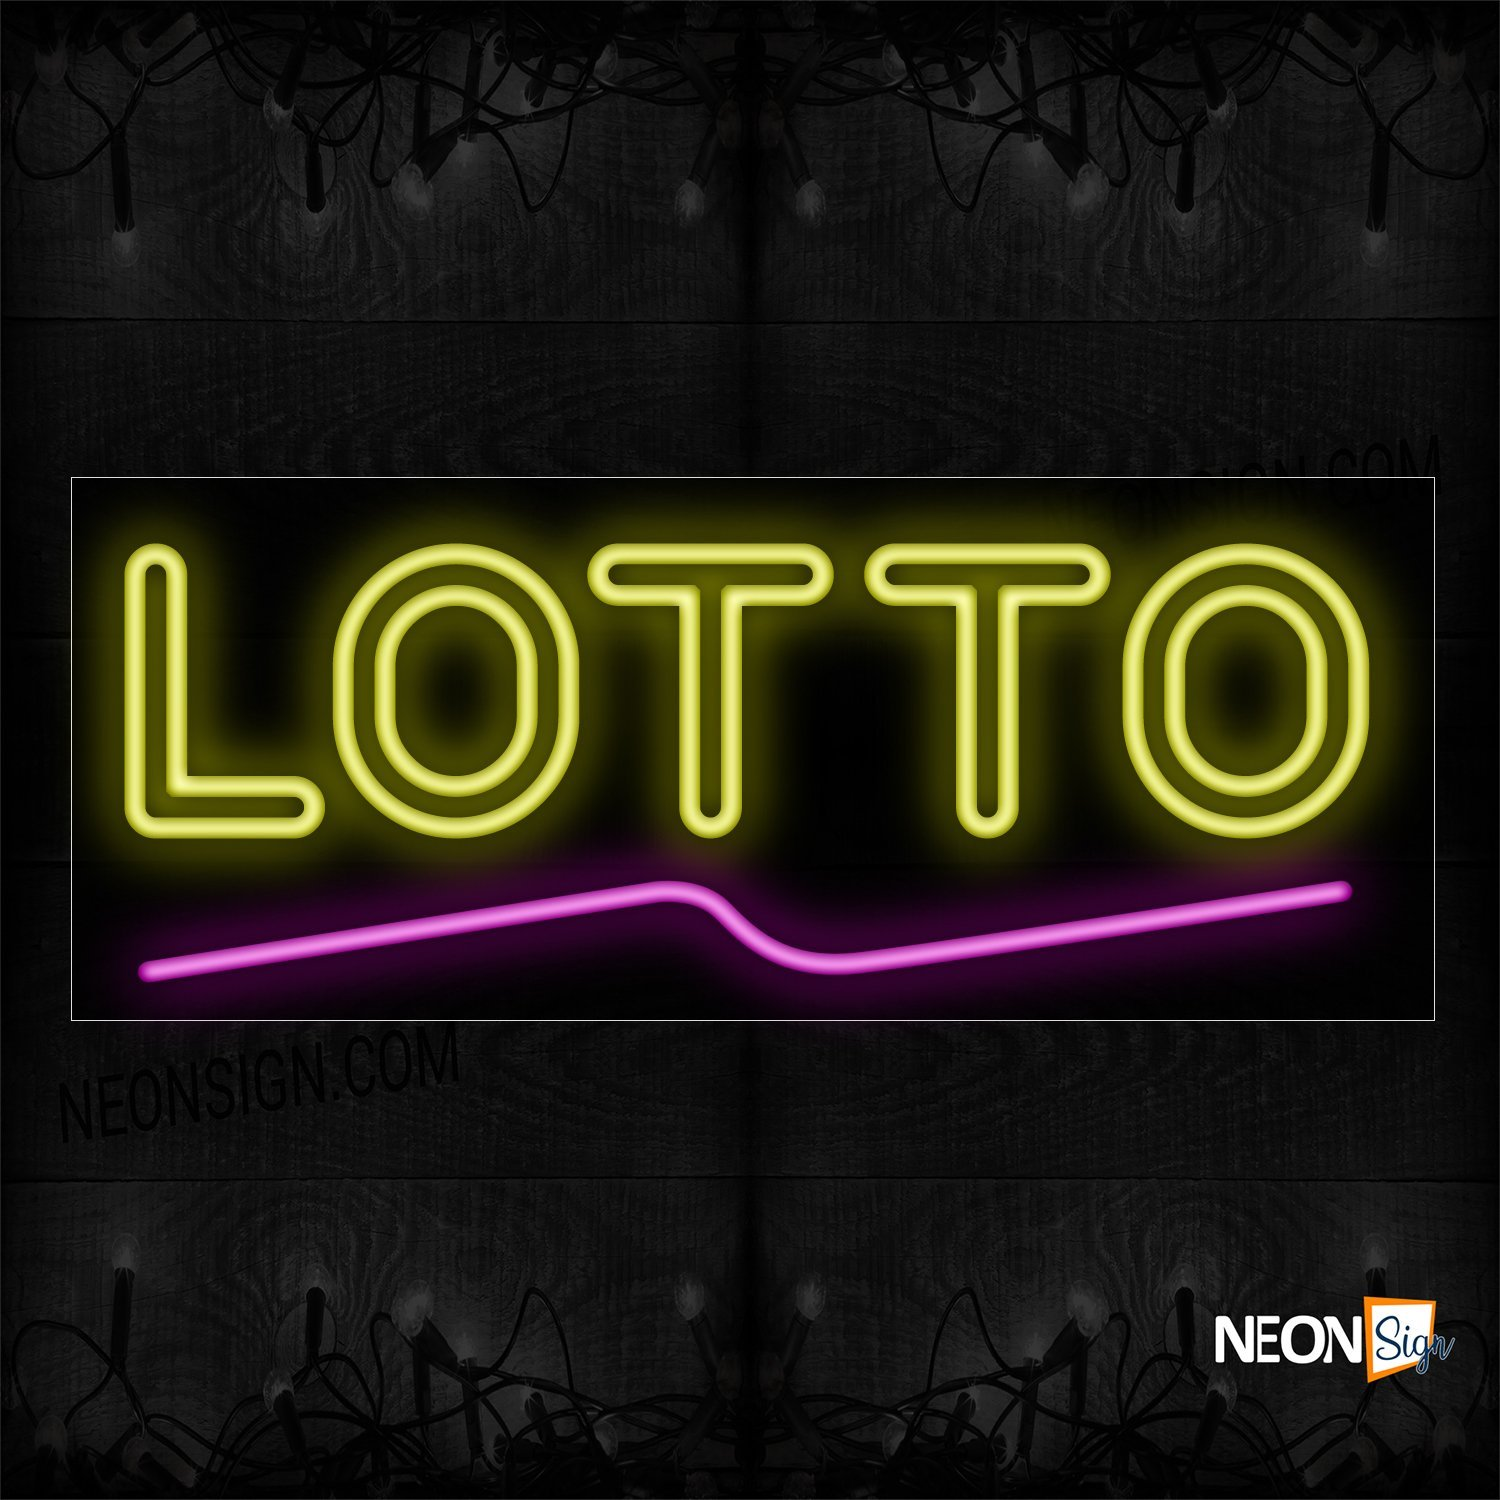 Image of 10089 Double Stroke Lotto In Yellow With Pink Line Neon Sign_13x32 Black Backing